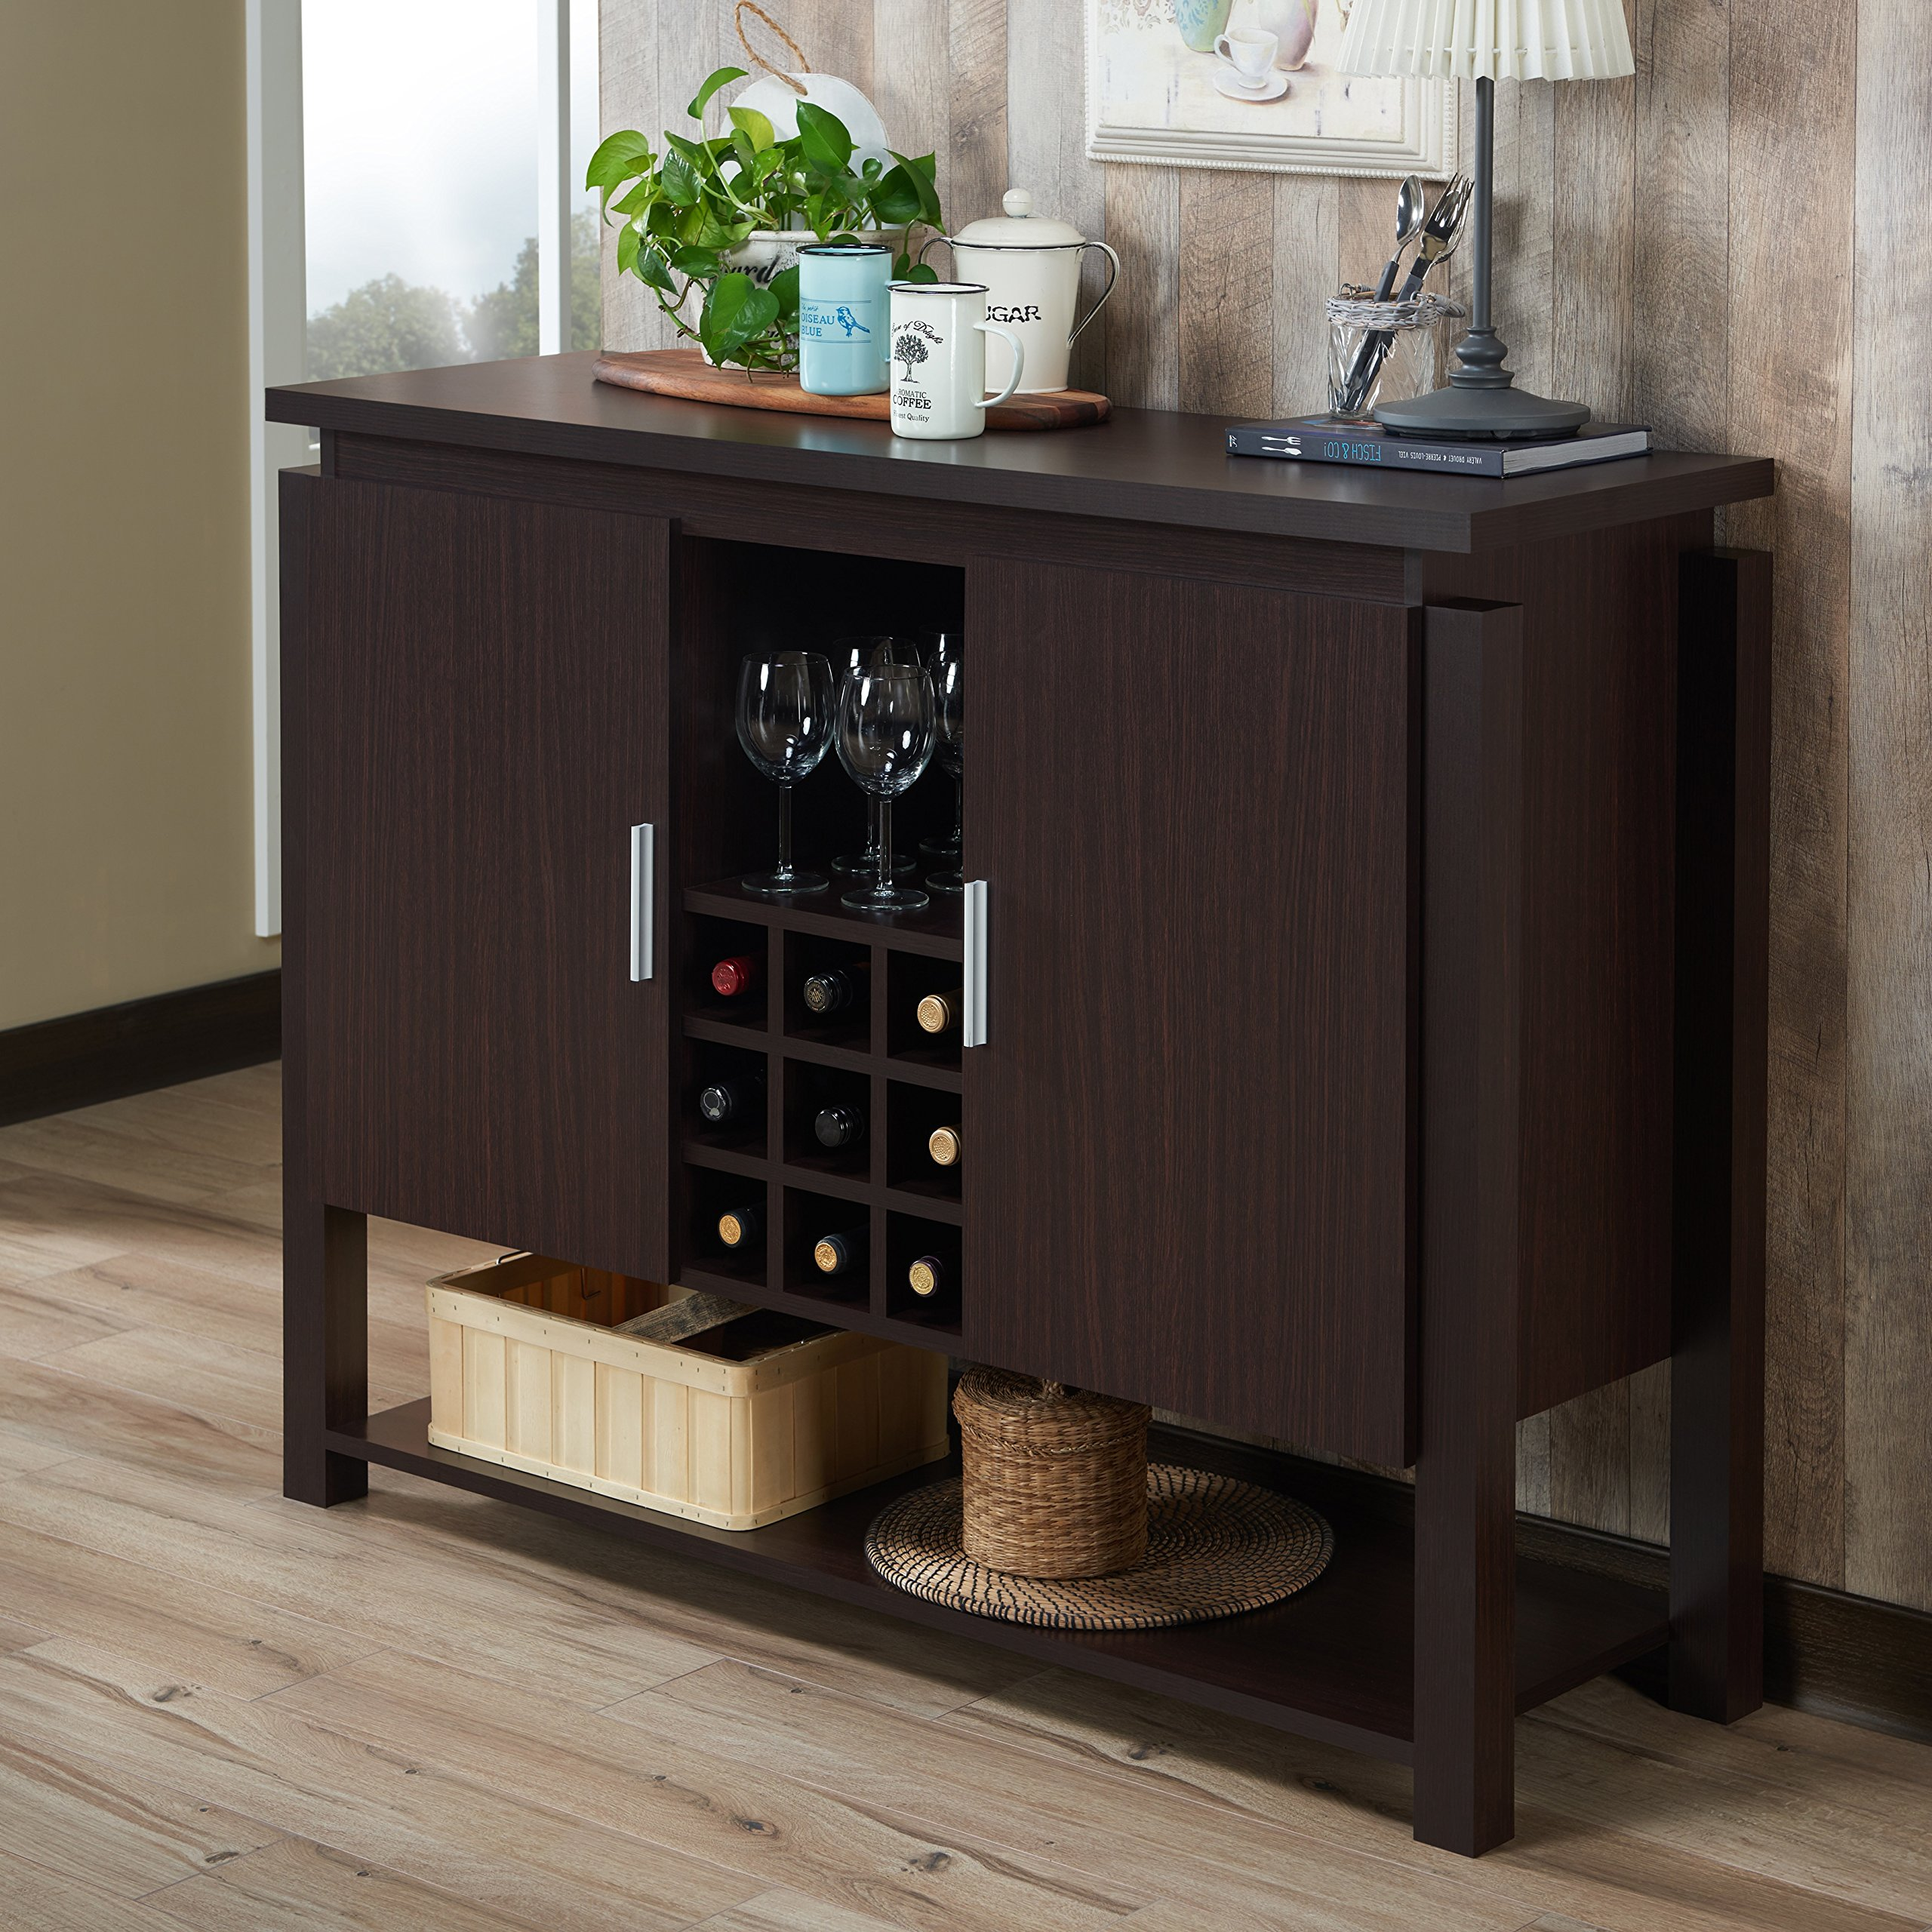 Furniture of America Celvin Contemporary Multi-Storage Walnut Buffet with Wine Cabinet